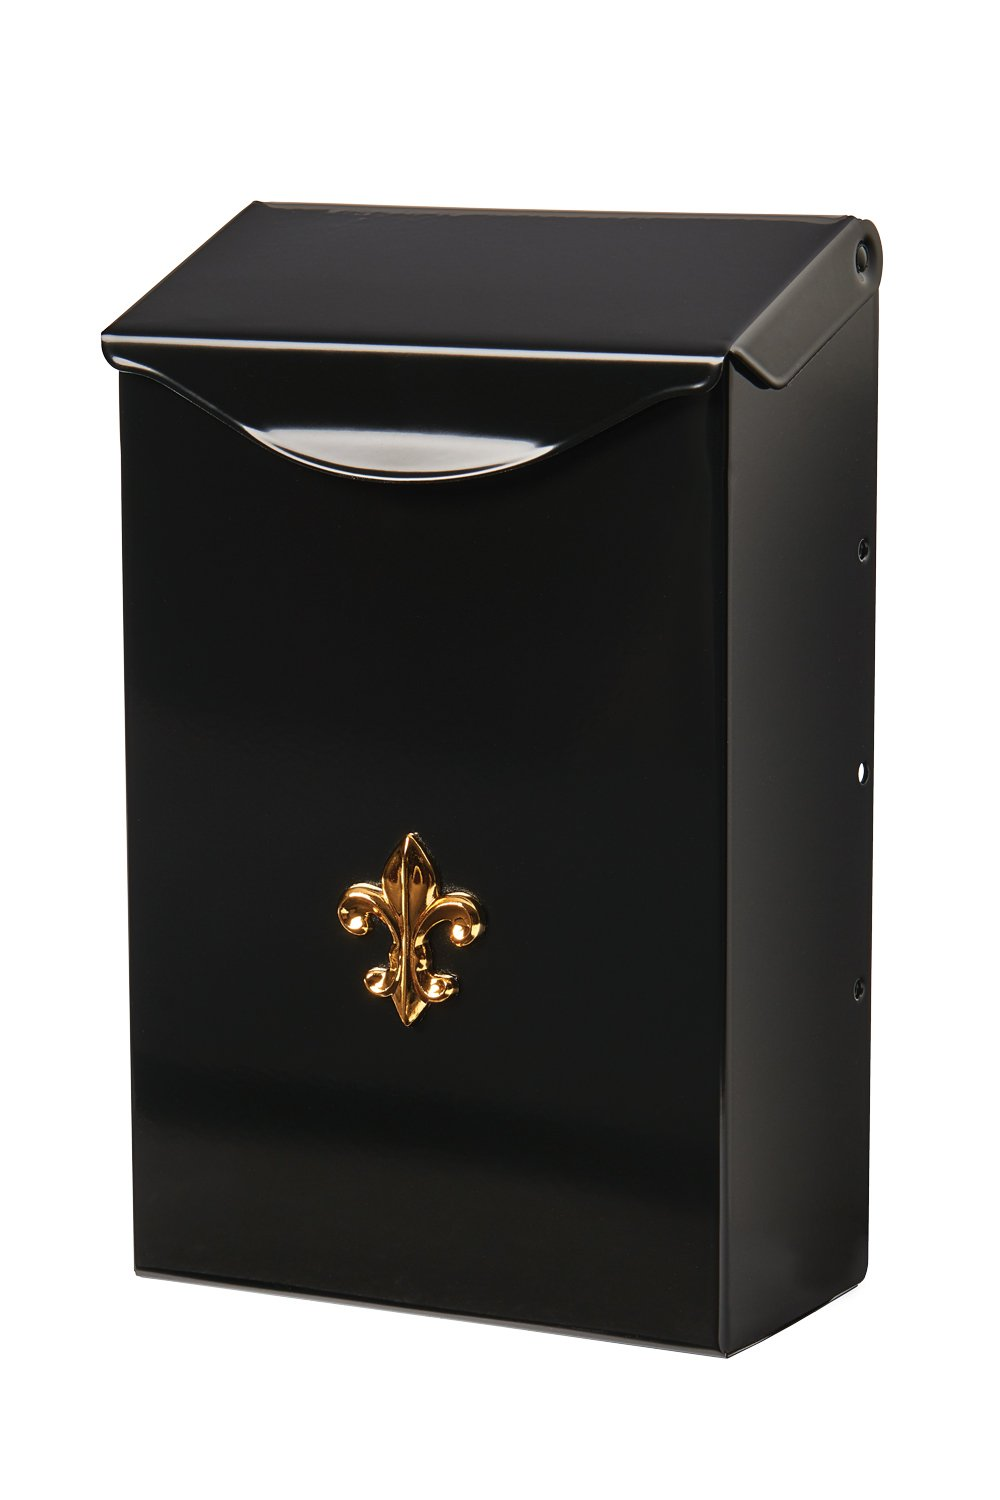 Gibraltar Mailboxes Classic Small Capacity Galvanized Steel Black, Wall-Mount Mailbox, BW110000 by Gibraltar Mailboxes